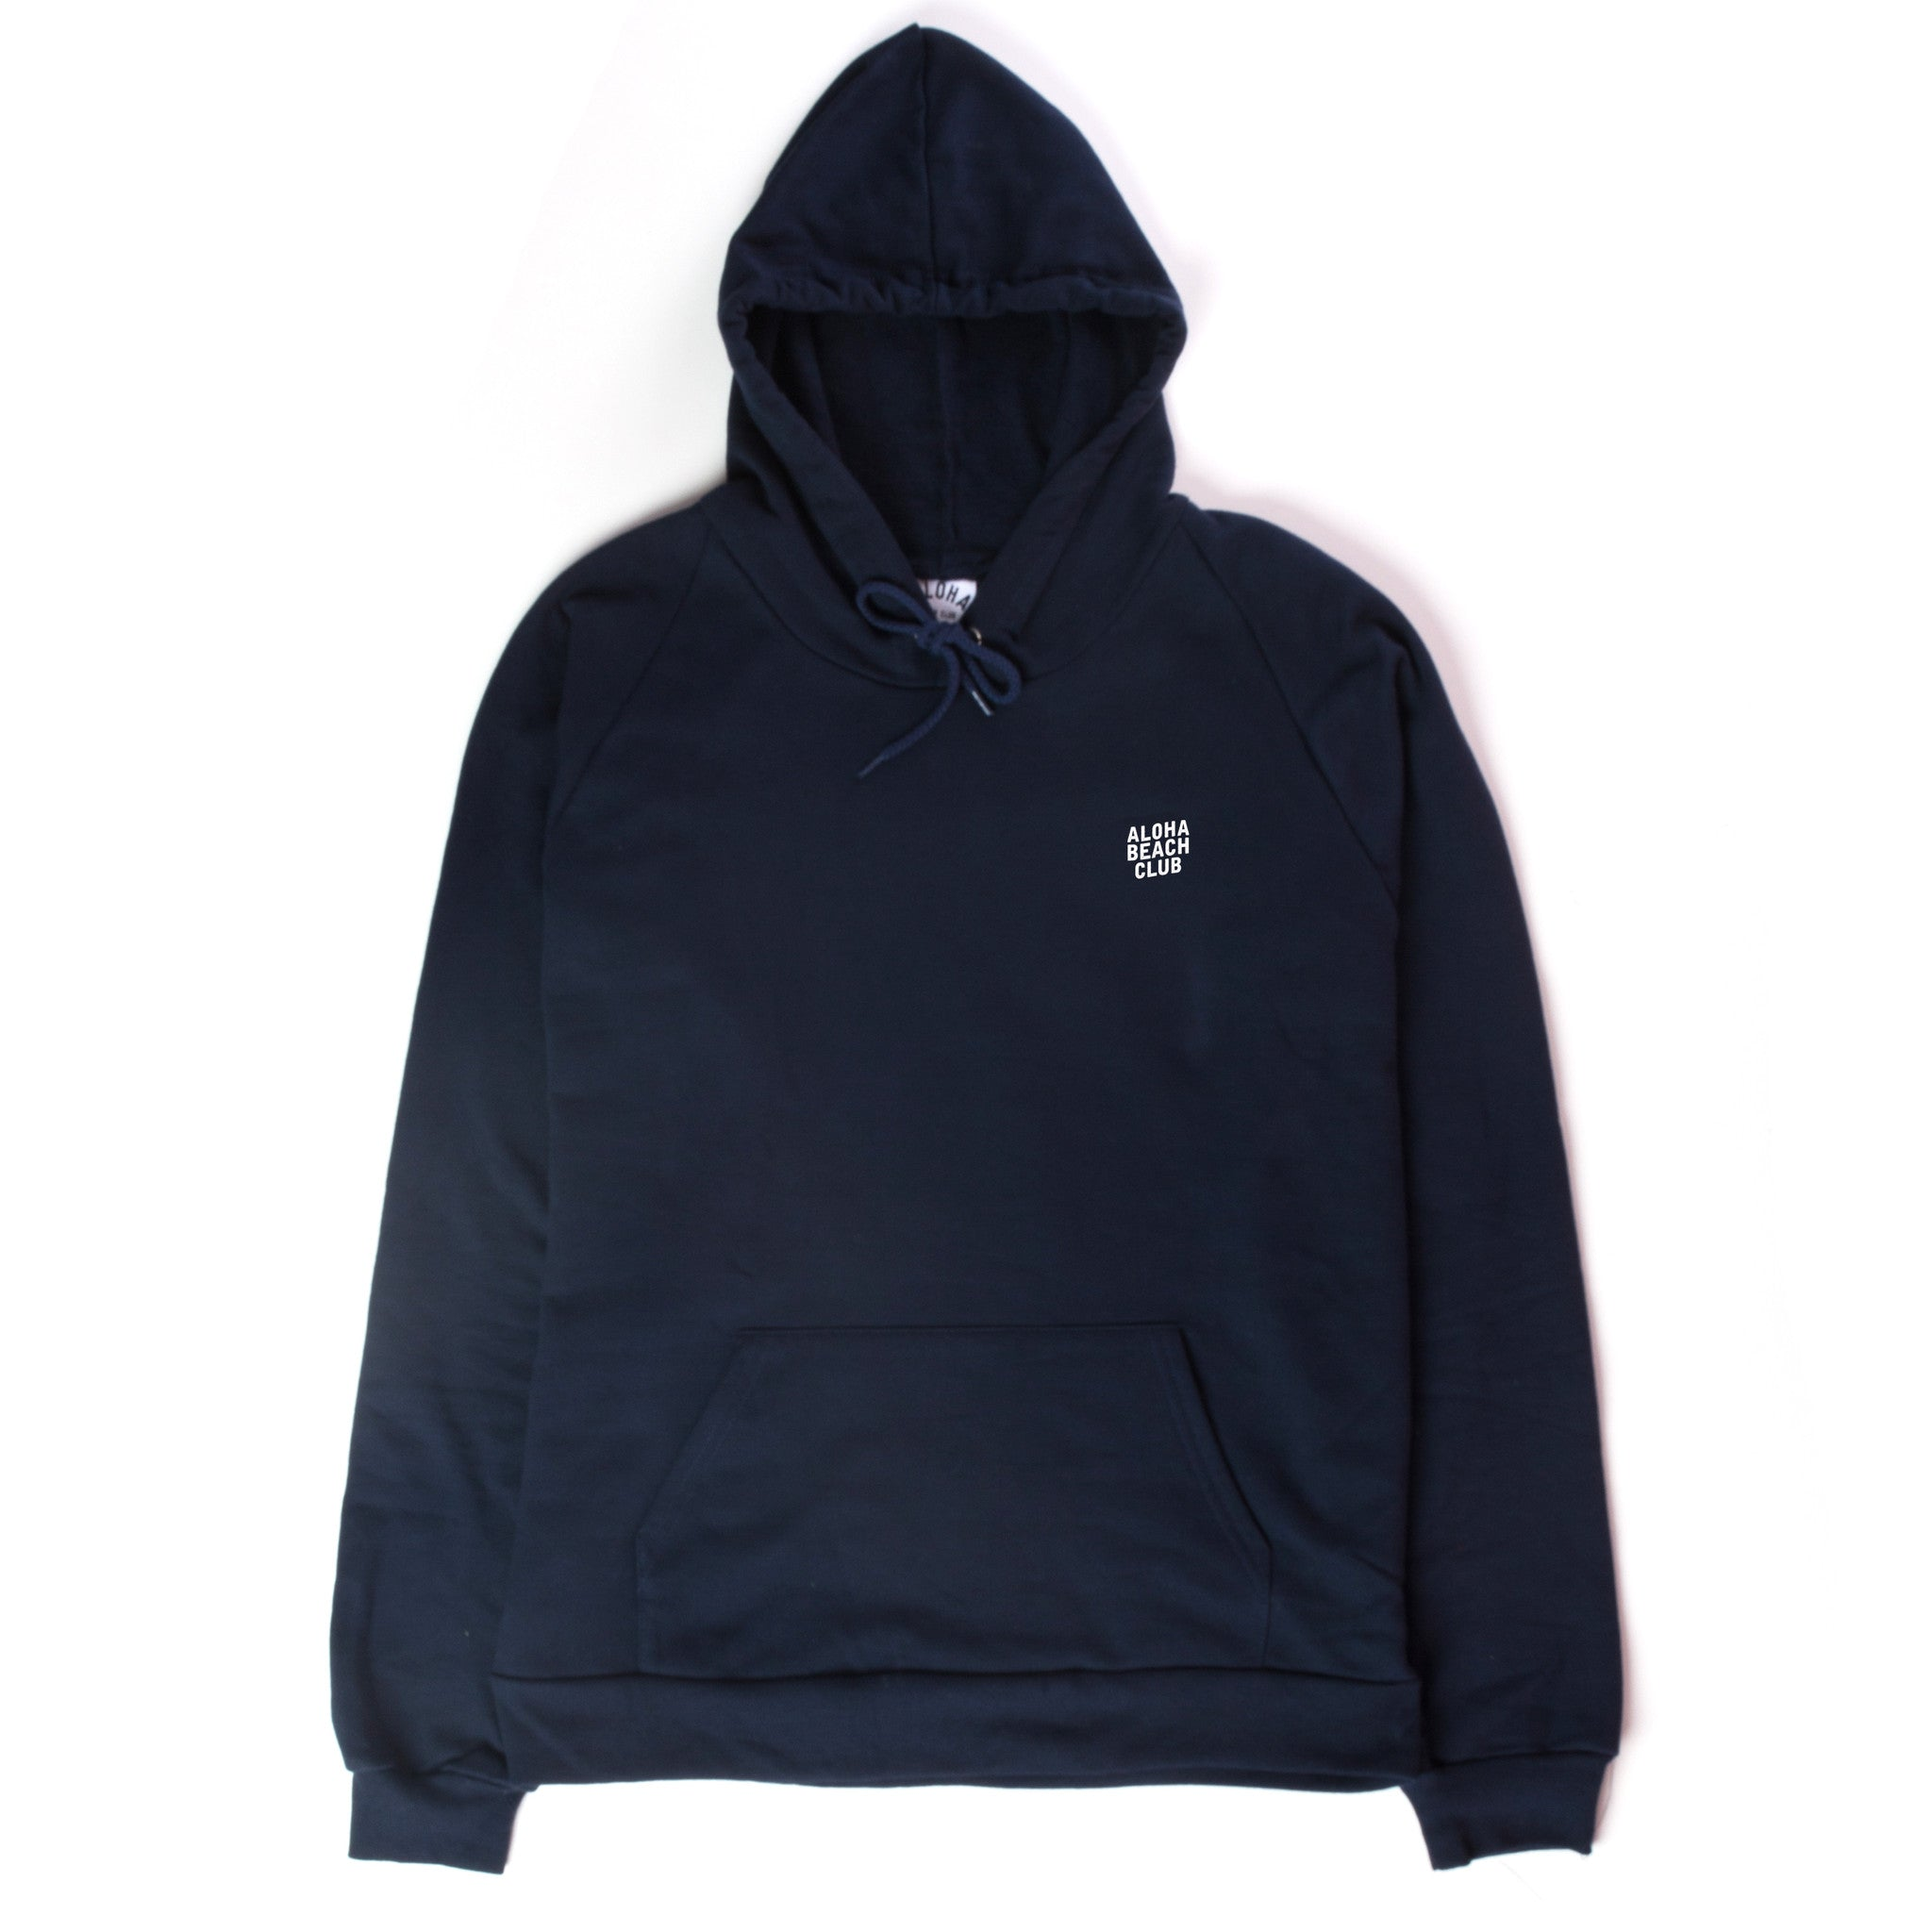 Aloha Beach Club - Breakers Hoodie Navy - Aloha Beach Club